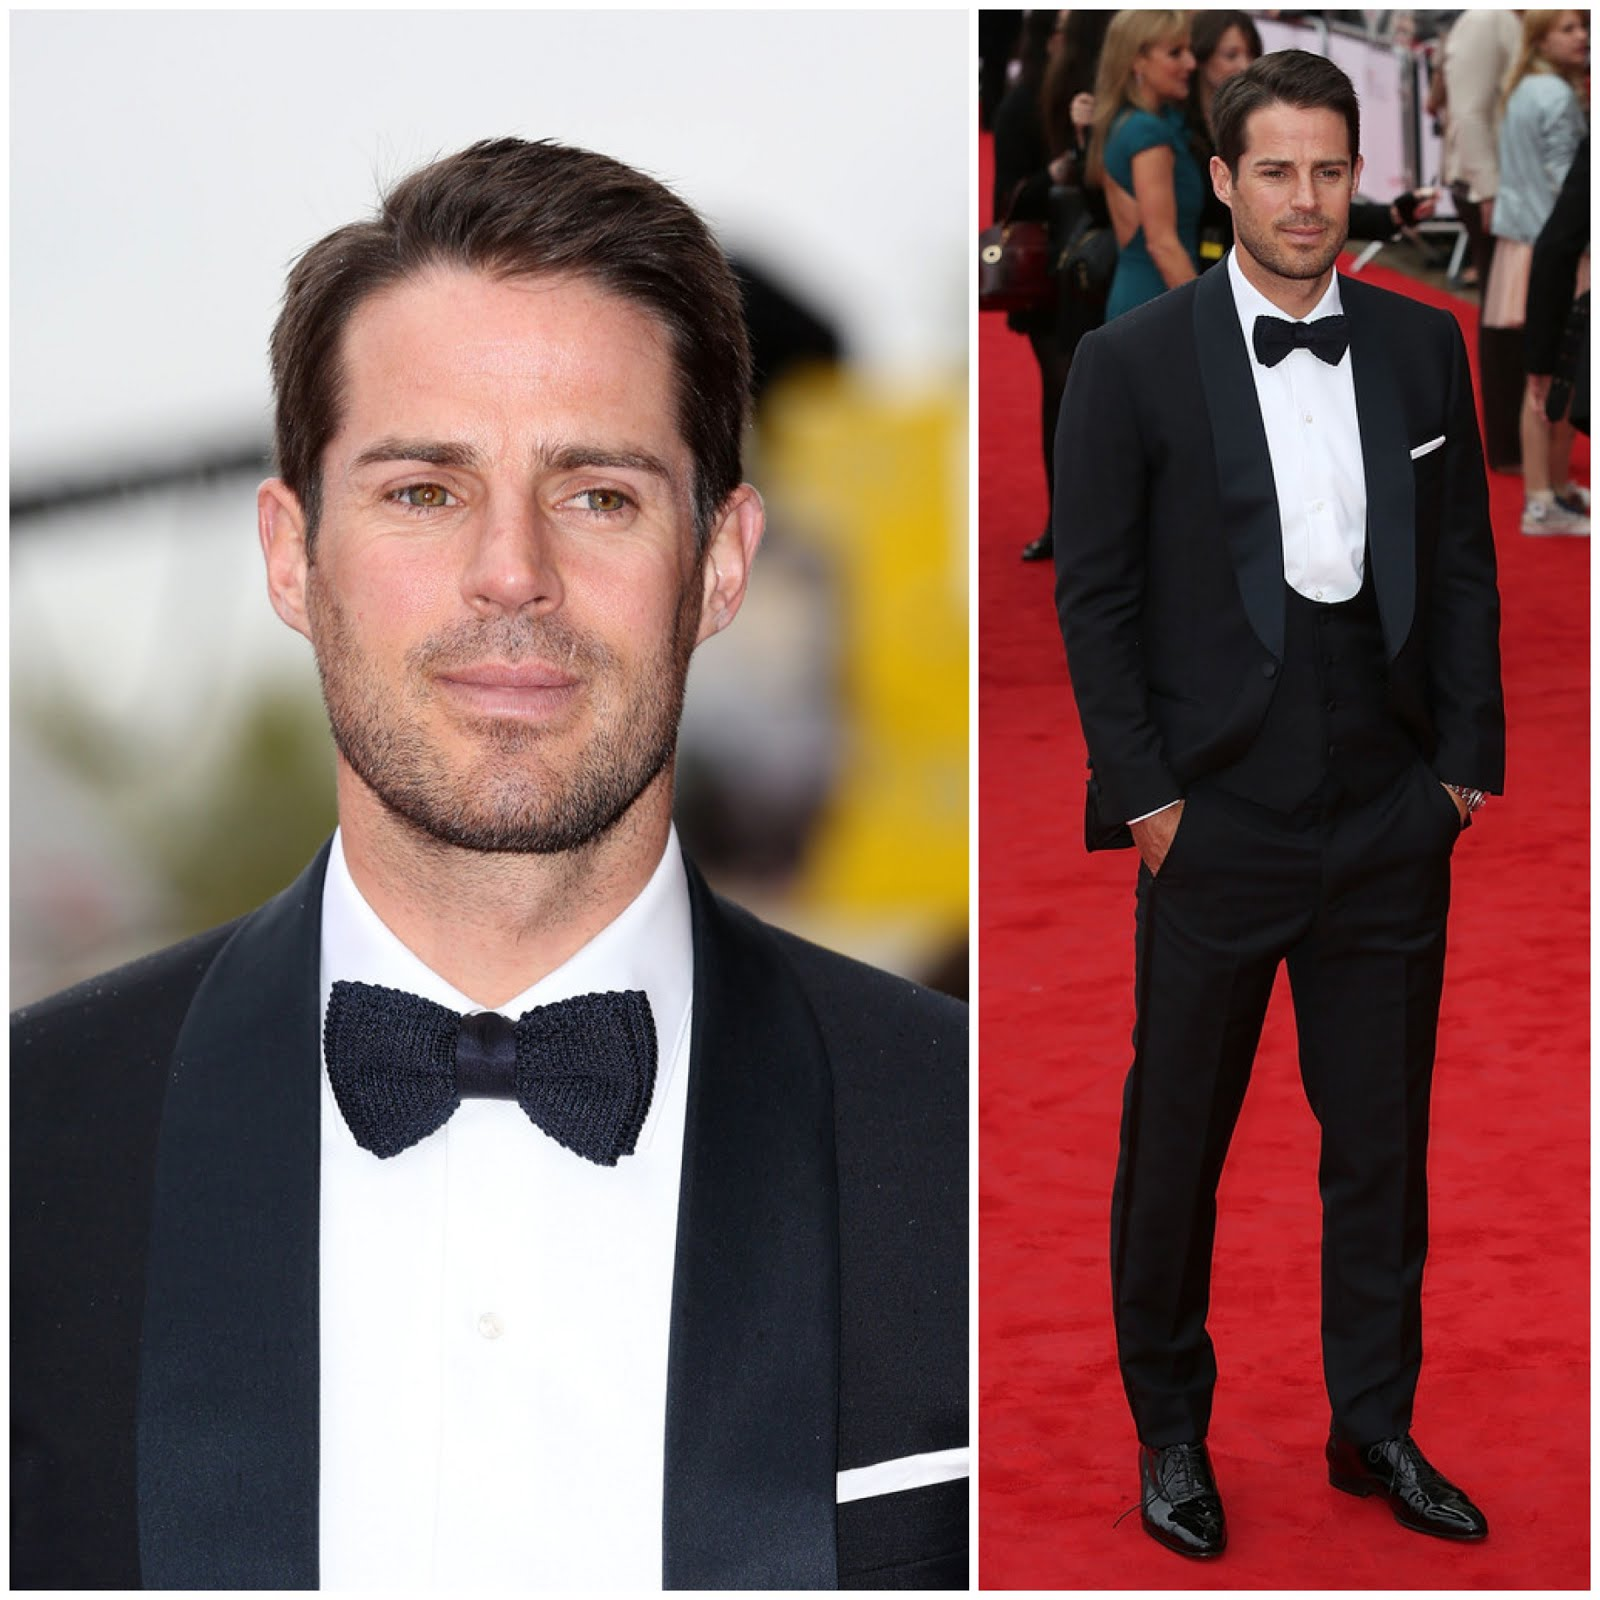 00O00 Menswear Blog: Jamie Redknapp in Thom Sweeney bespoke 3 piece suit - 2013 BAFTA Awards London